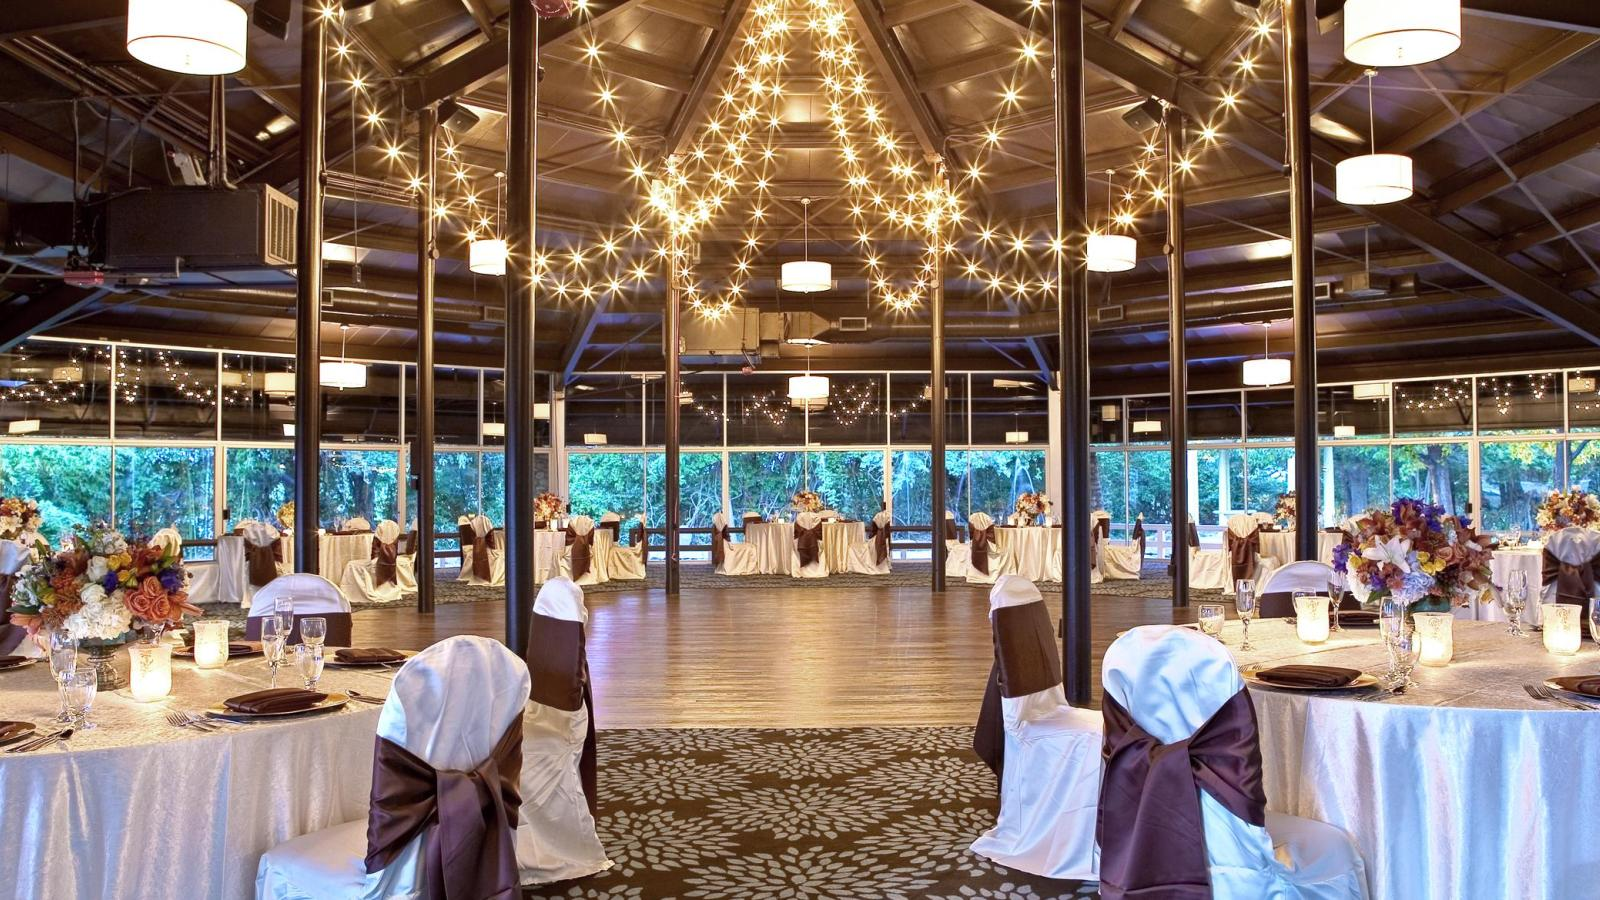 Wedding Venues in Arlington TX - Wedding Reception